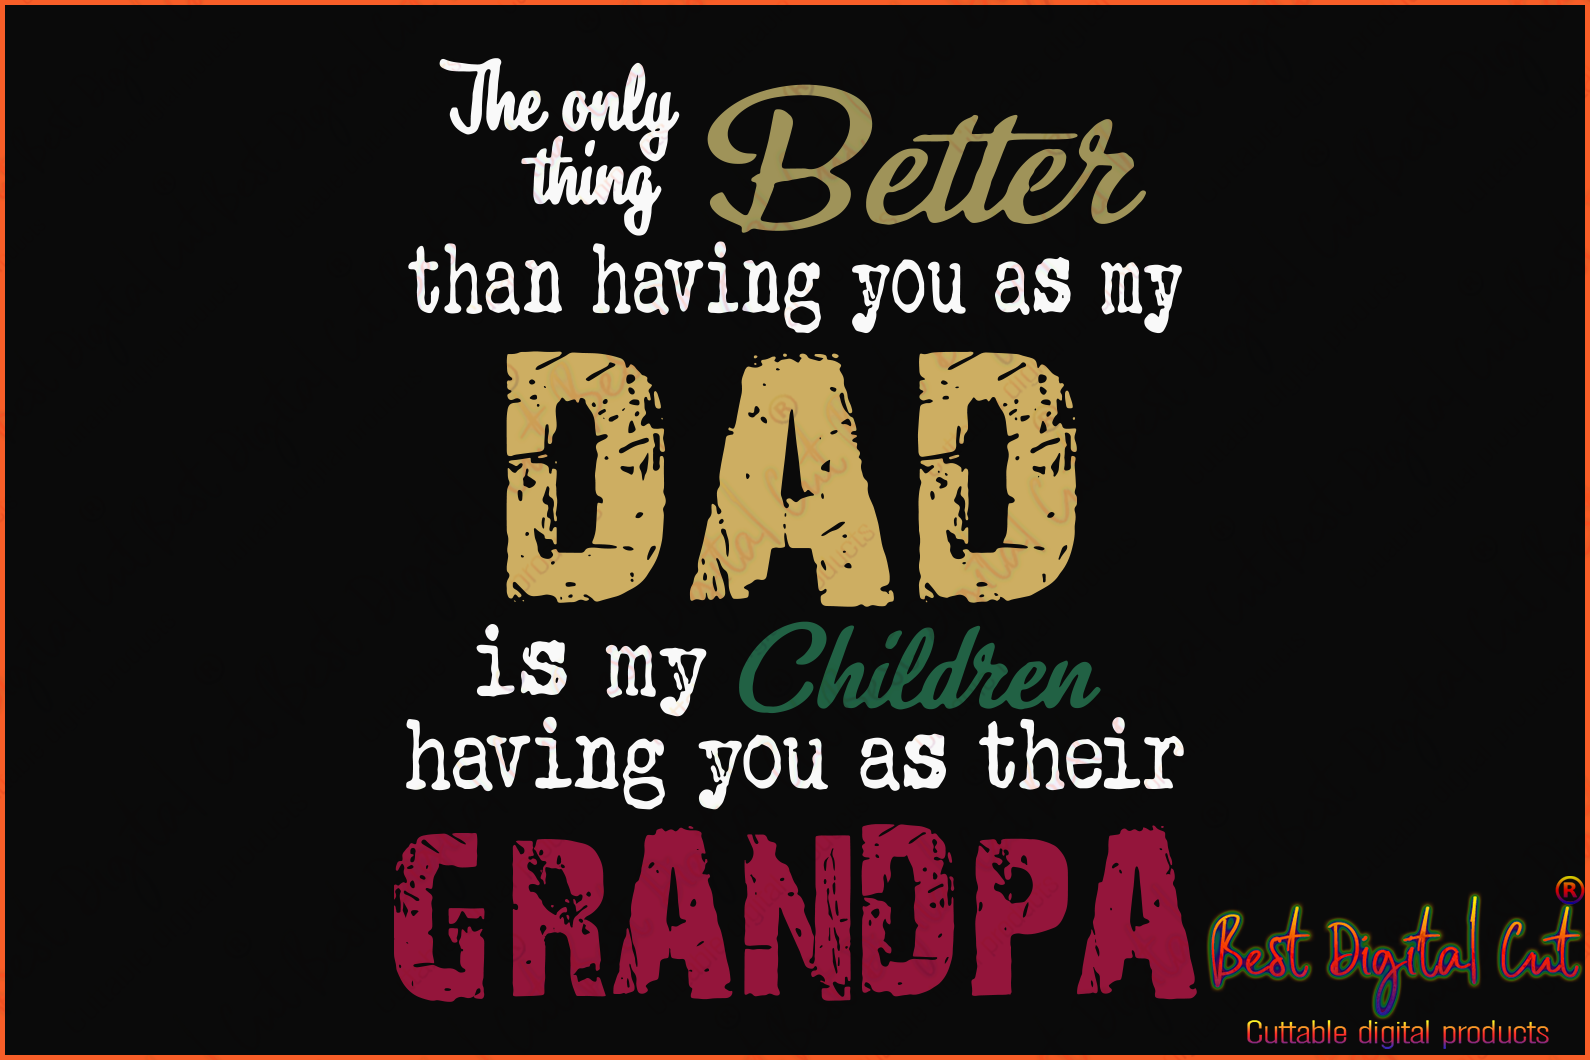 The Only Thing Better Than Having You As My Dad Is My Childre Gift Fo Best Digital Cut